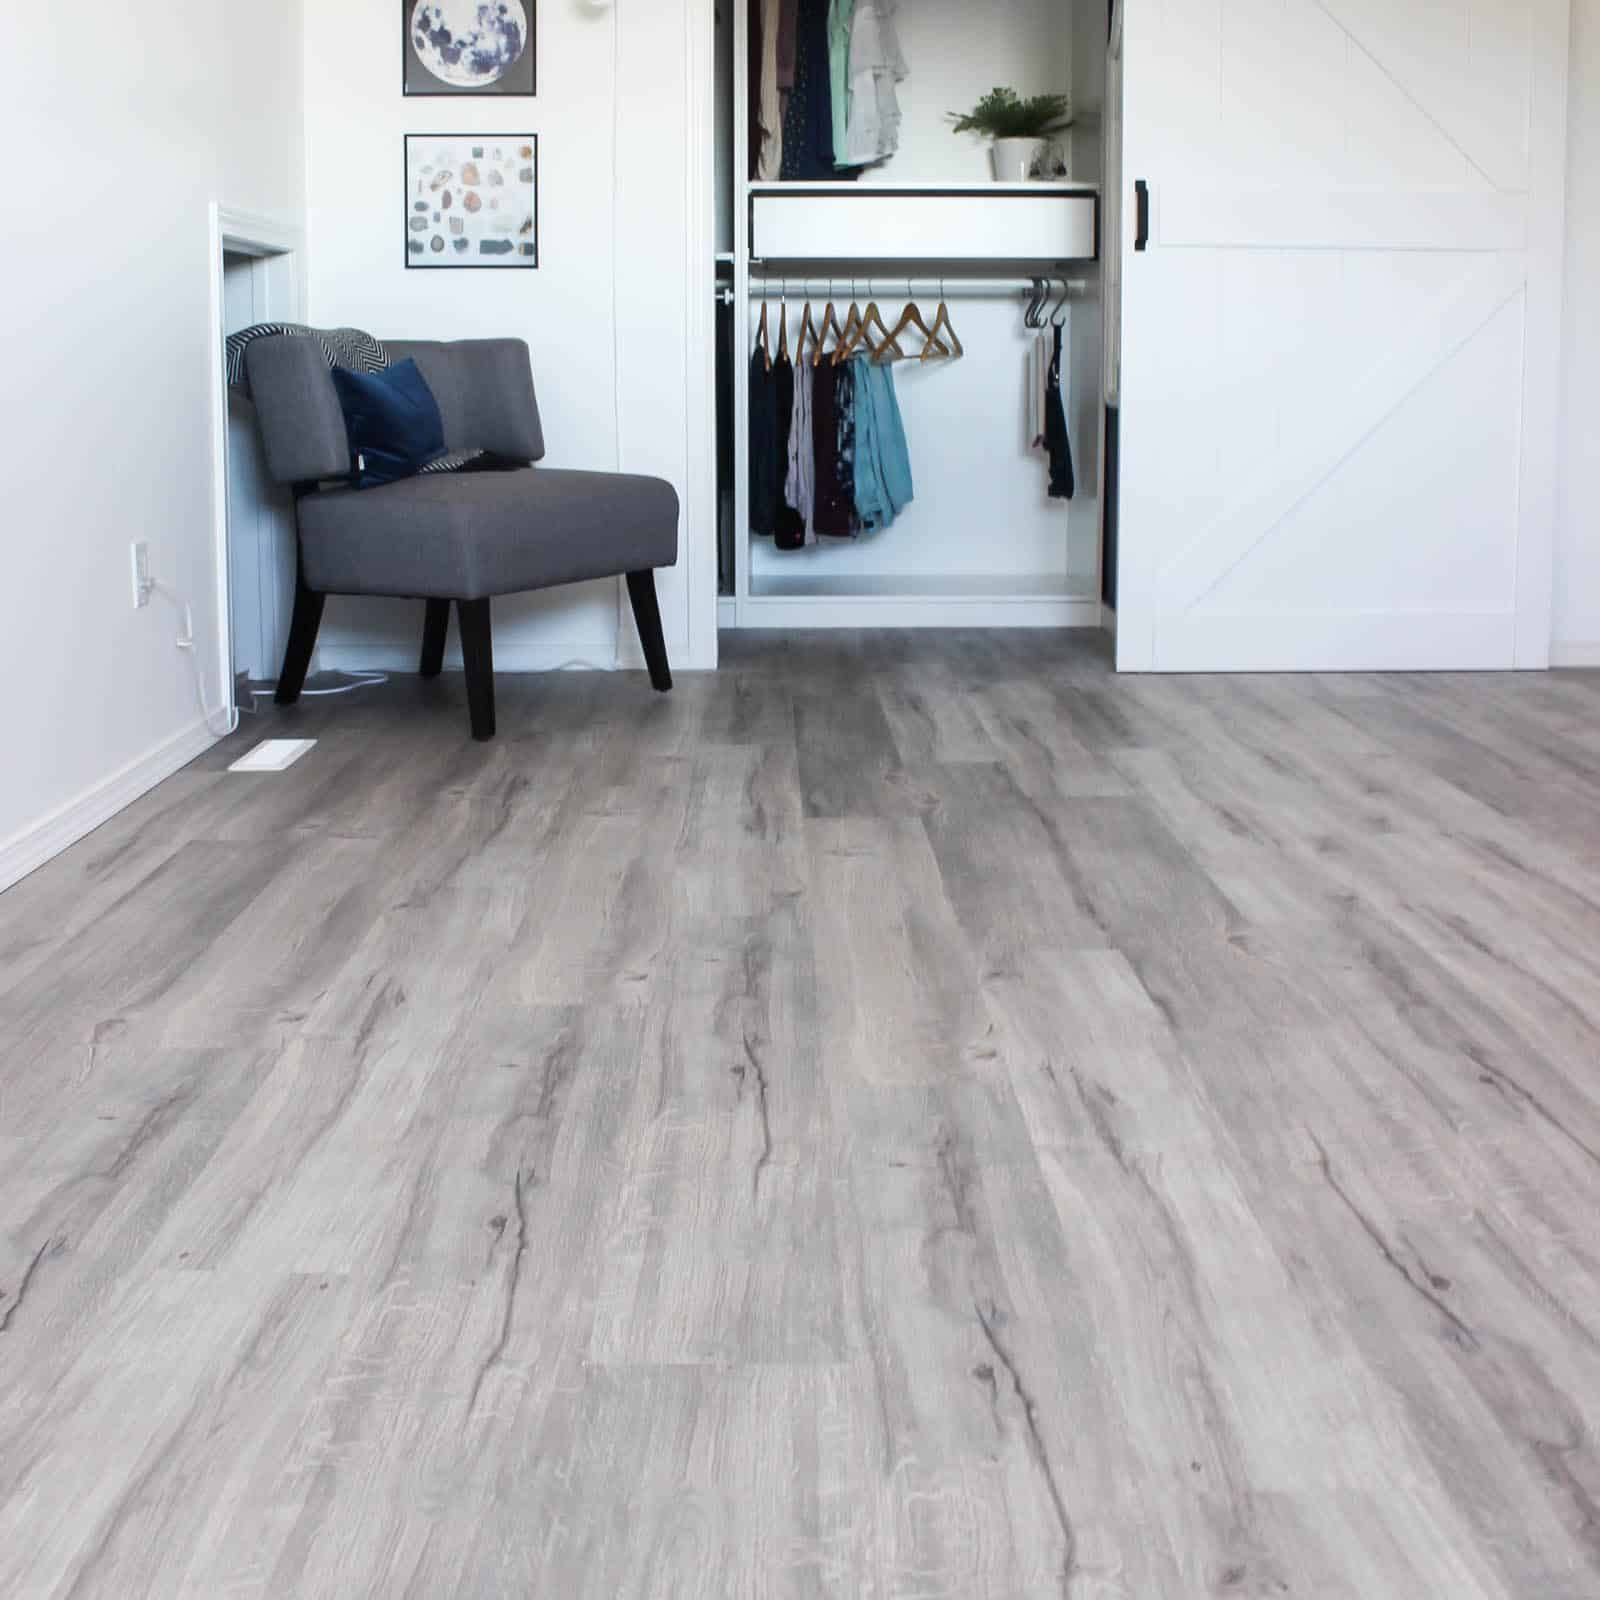 Transforming A Space By Installing Vinyl Plank Flooring Vinyl